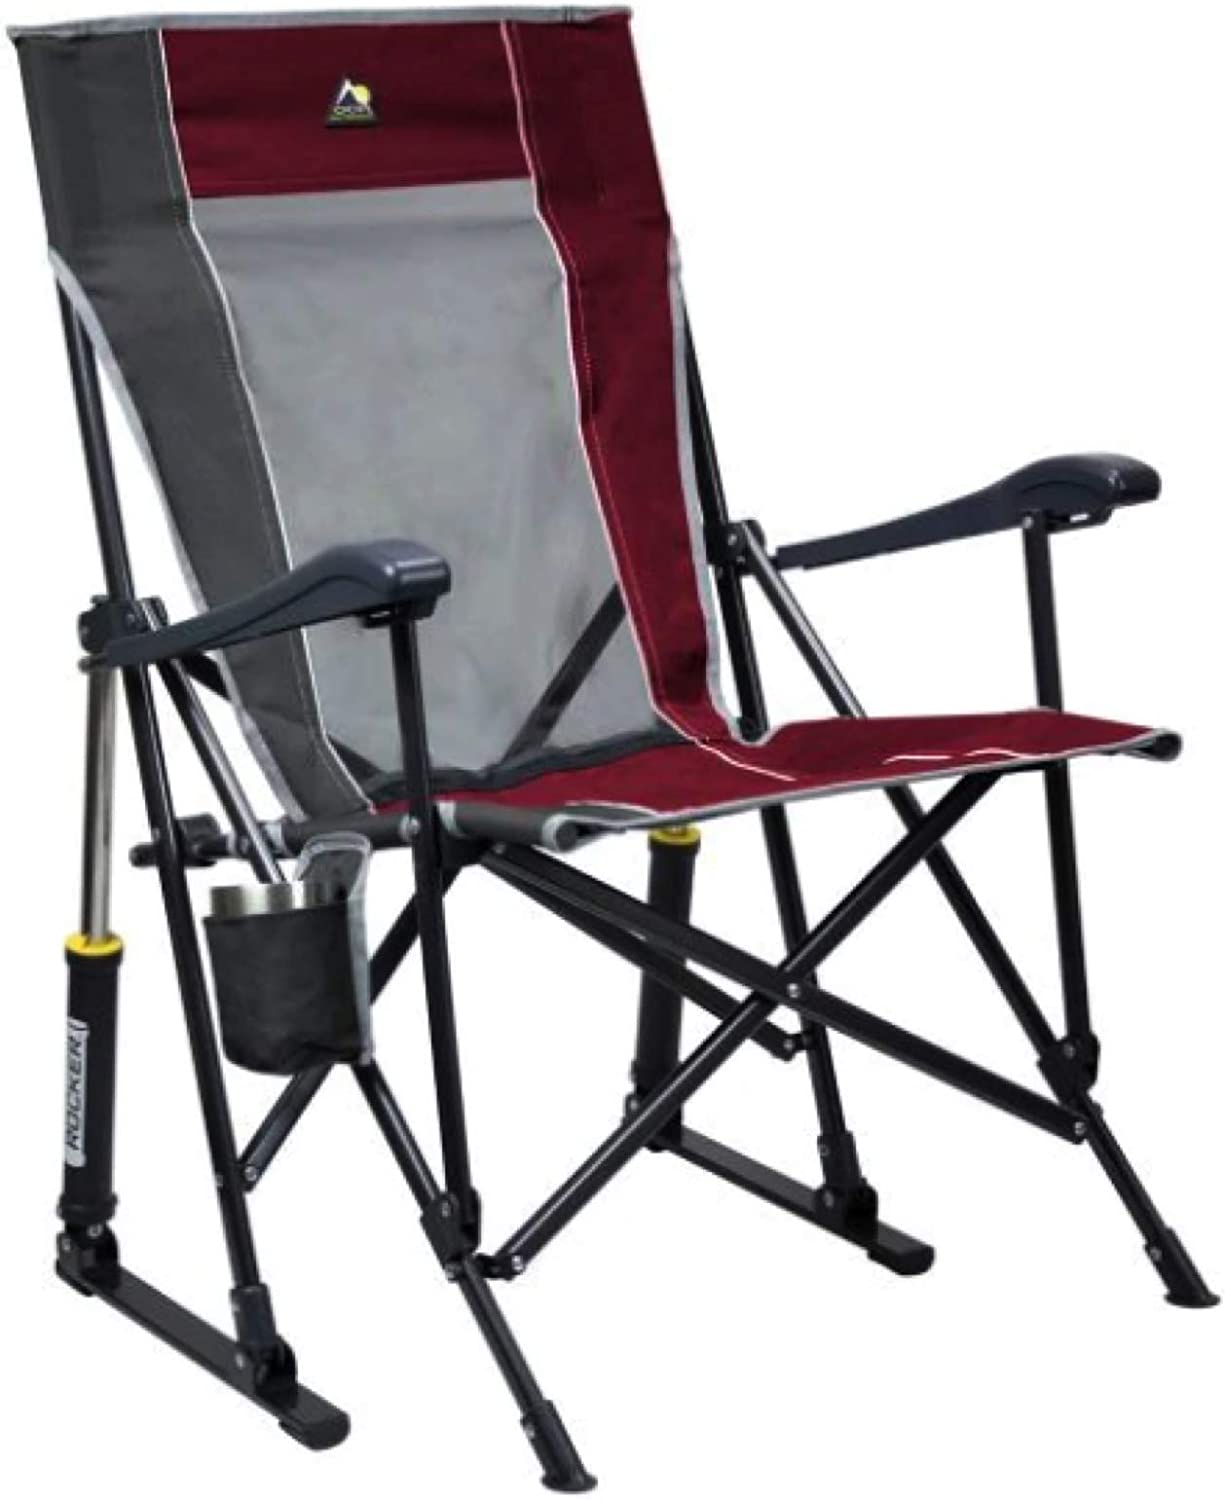 Large special price !! GCI Roadtrip Rocking Chair Outdoor Quantity limited Cinnamon Pewter